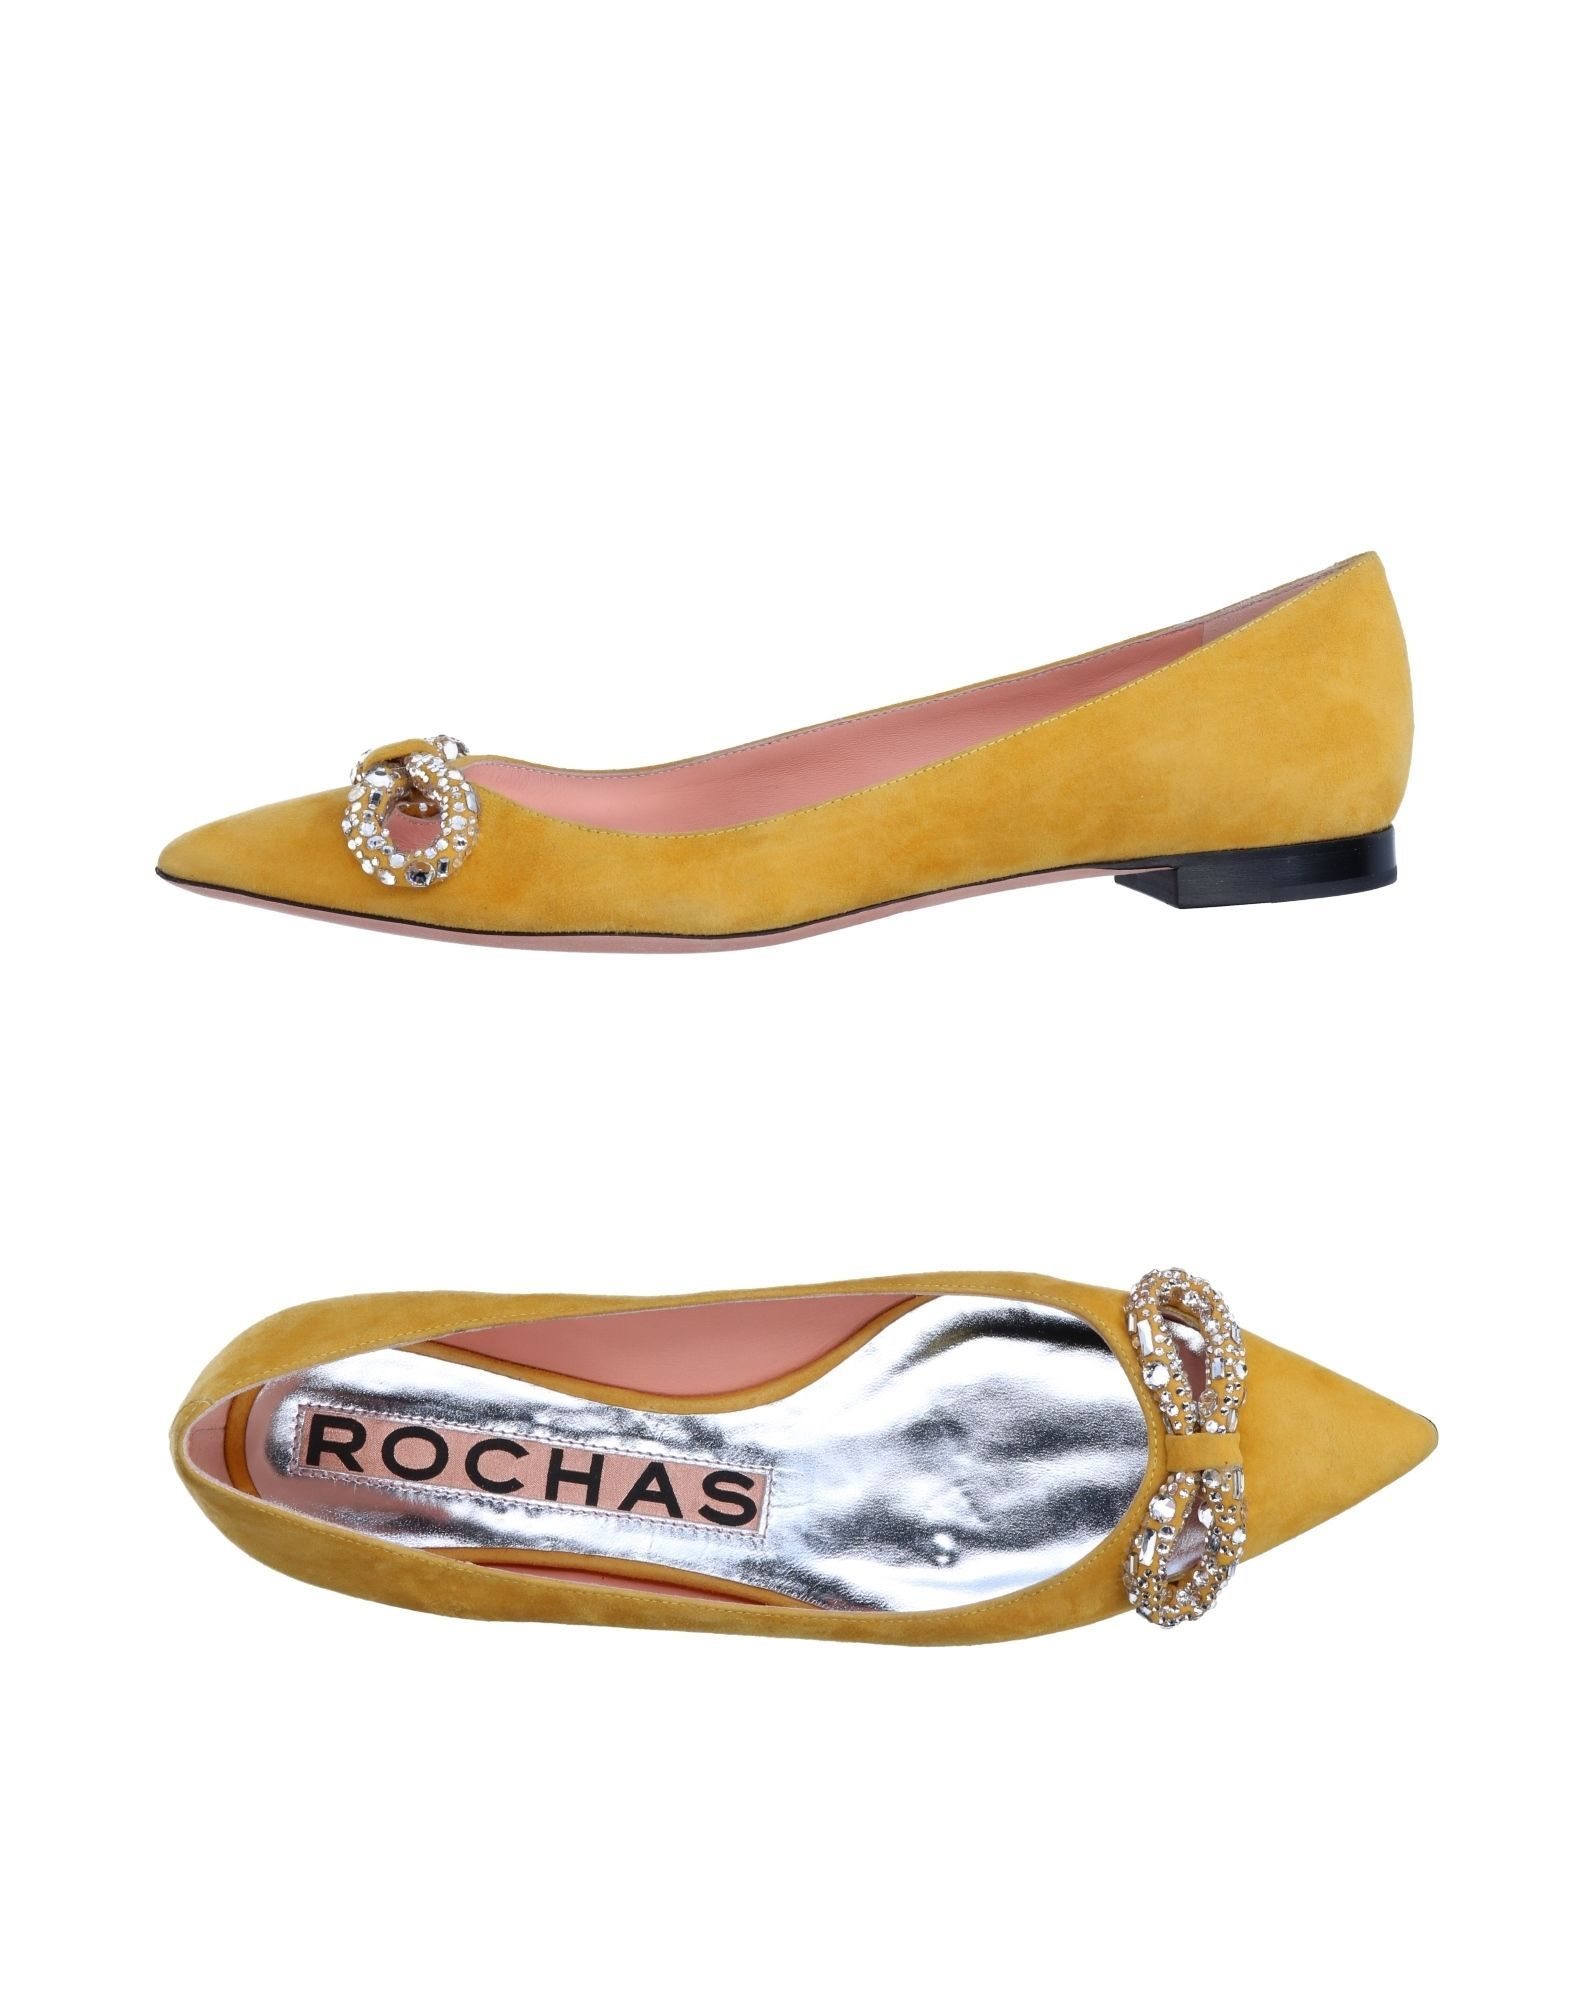 dc84b25a7582 ... Exclusive Items Italian And International Rochas Women Ballet Flats On  Yoox The Best Online Selection Of